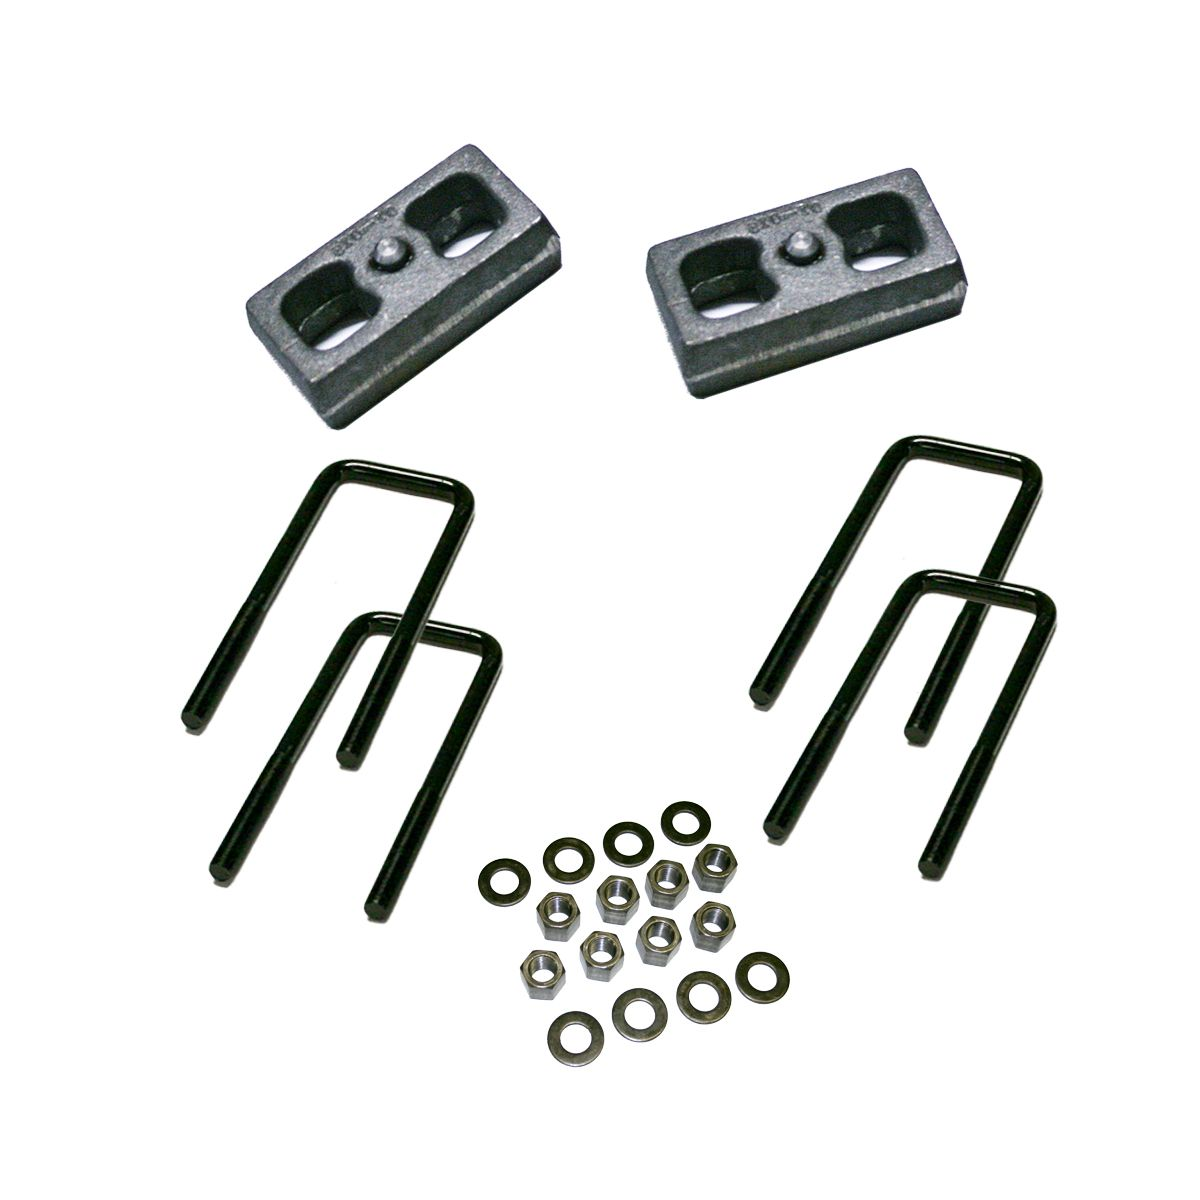 "1.5"" Rear Block Kit for 1988-1998 GM 1500 Pickup and 1992-1999 1500 Suburban, Blazer, and Tahoe"